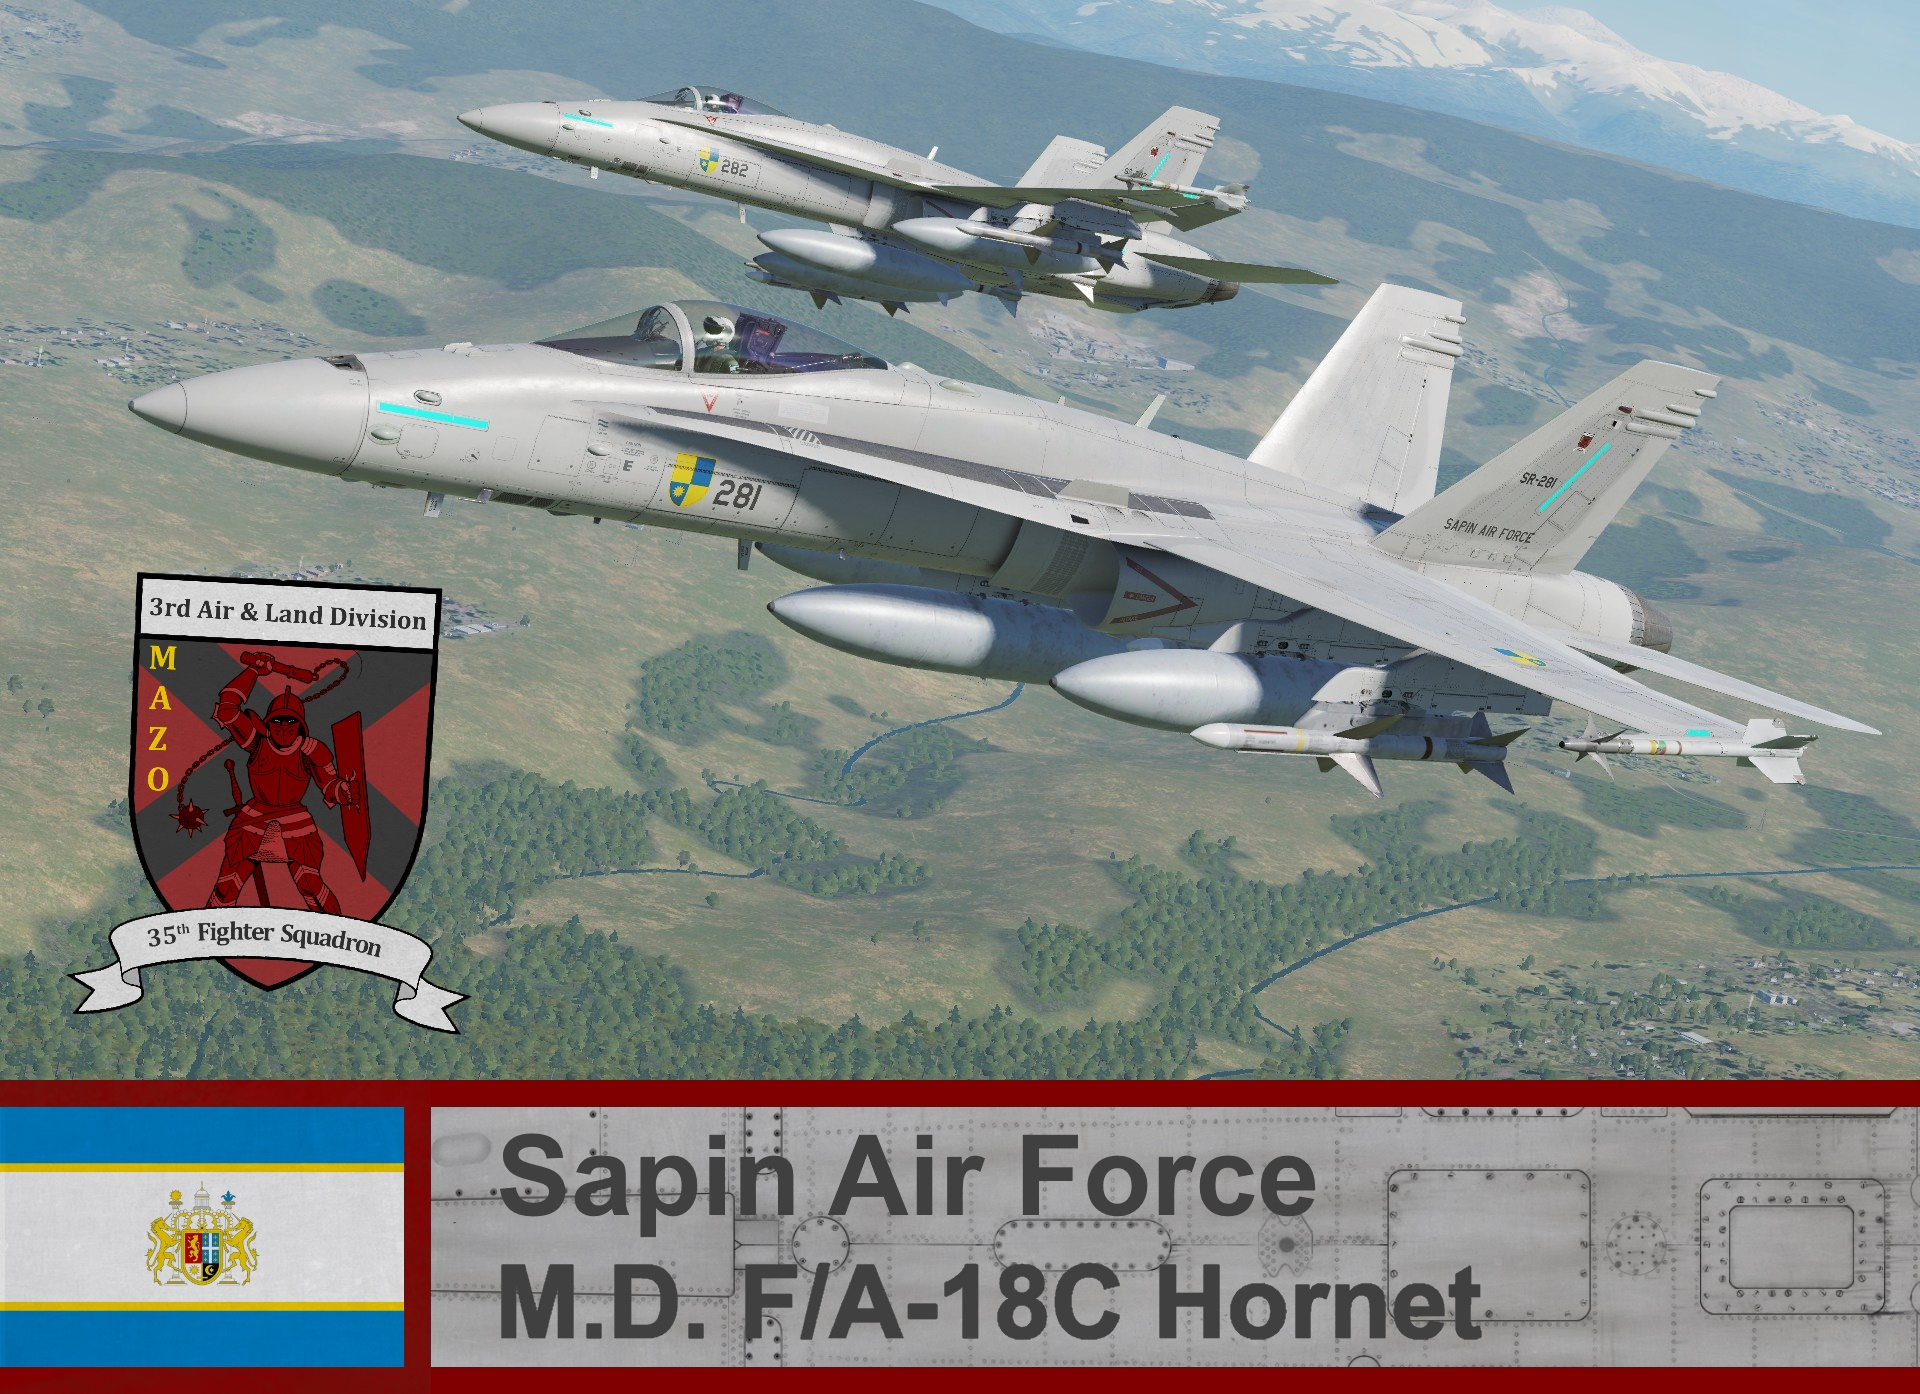 Sapin Air Force F/A-18C Hornet- Ace Combat Zero (35th FS)